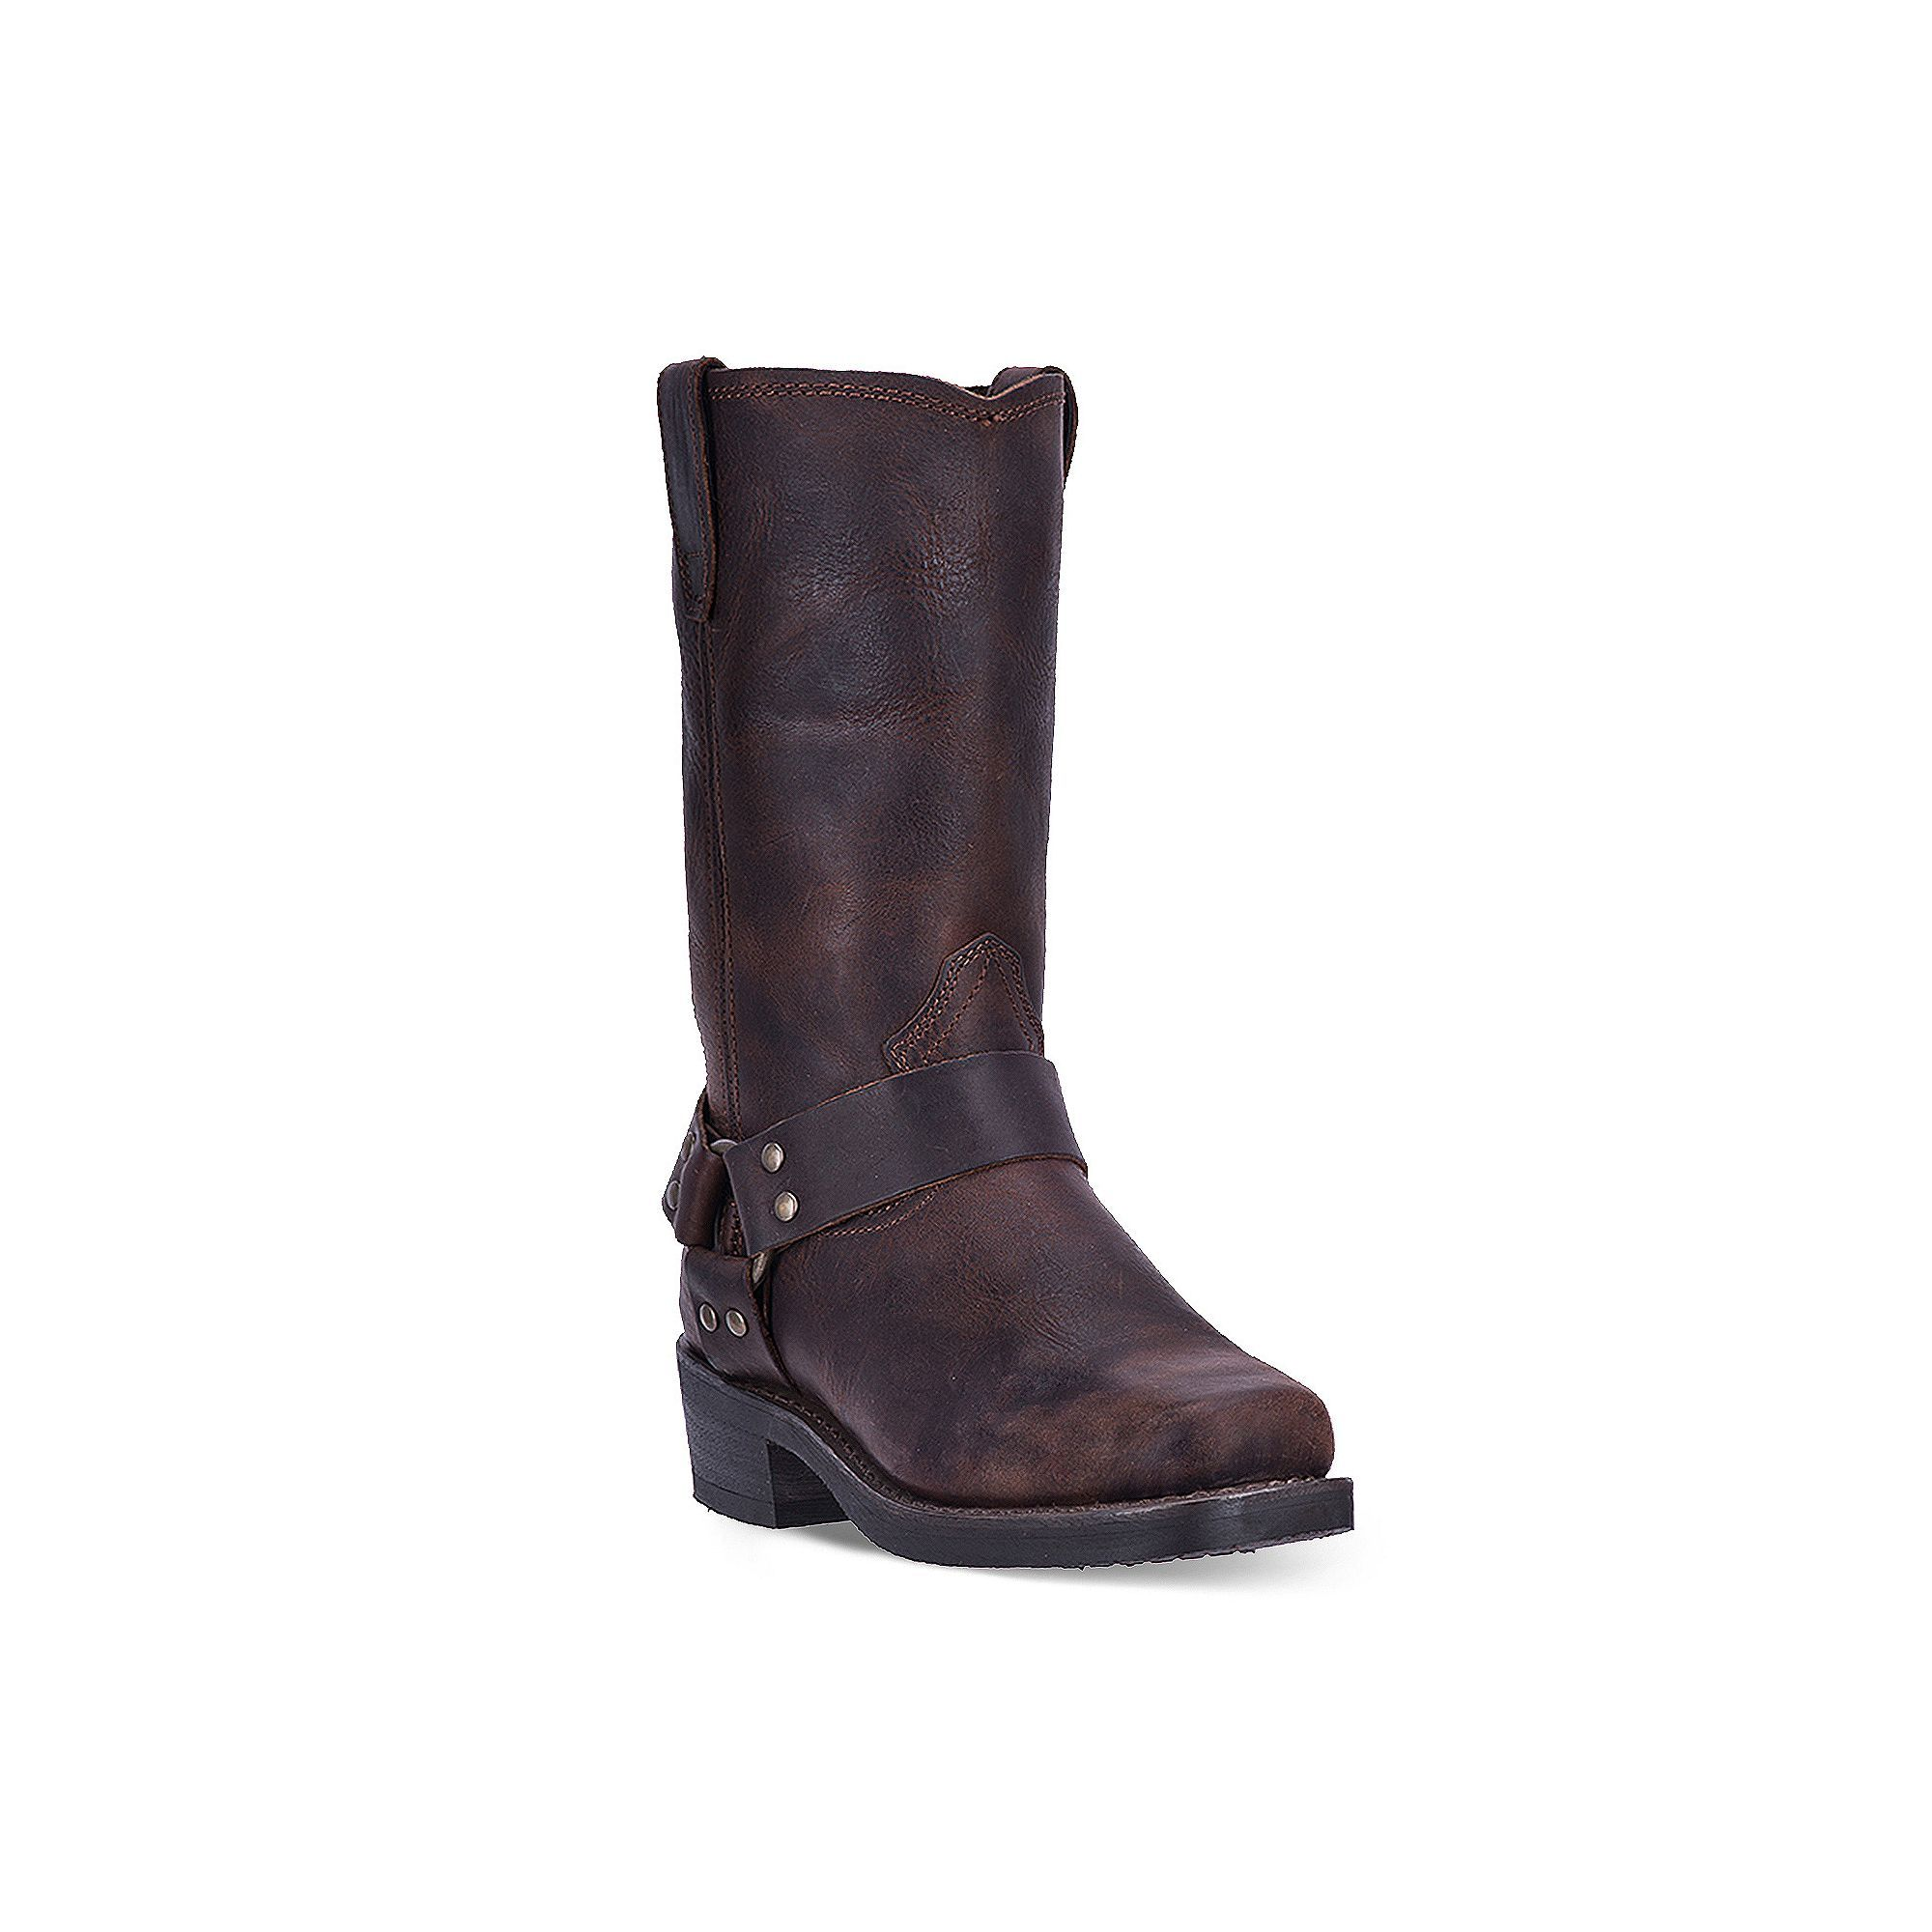 countdown package for sale cheap price from china Dingo Dean Men's Harness ... Western Boots best 3W0YyNl